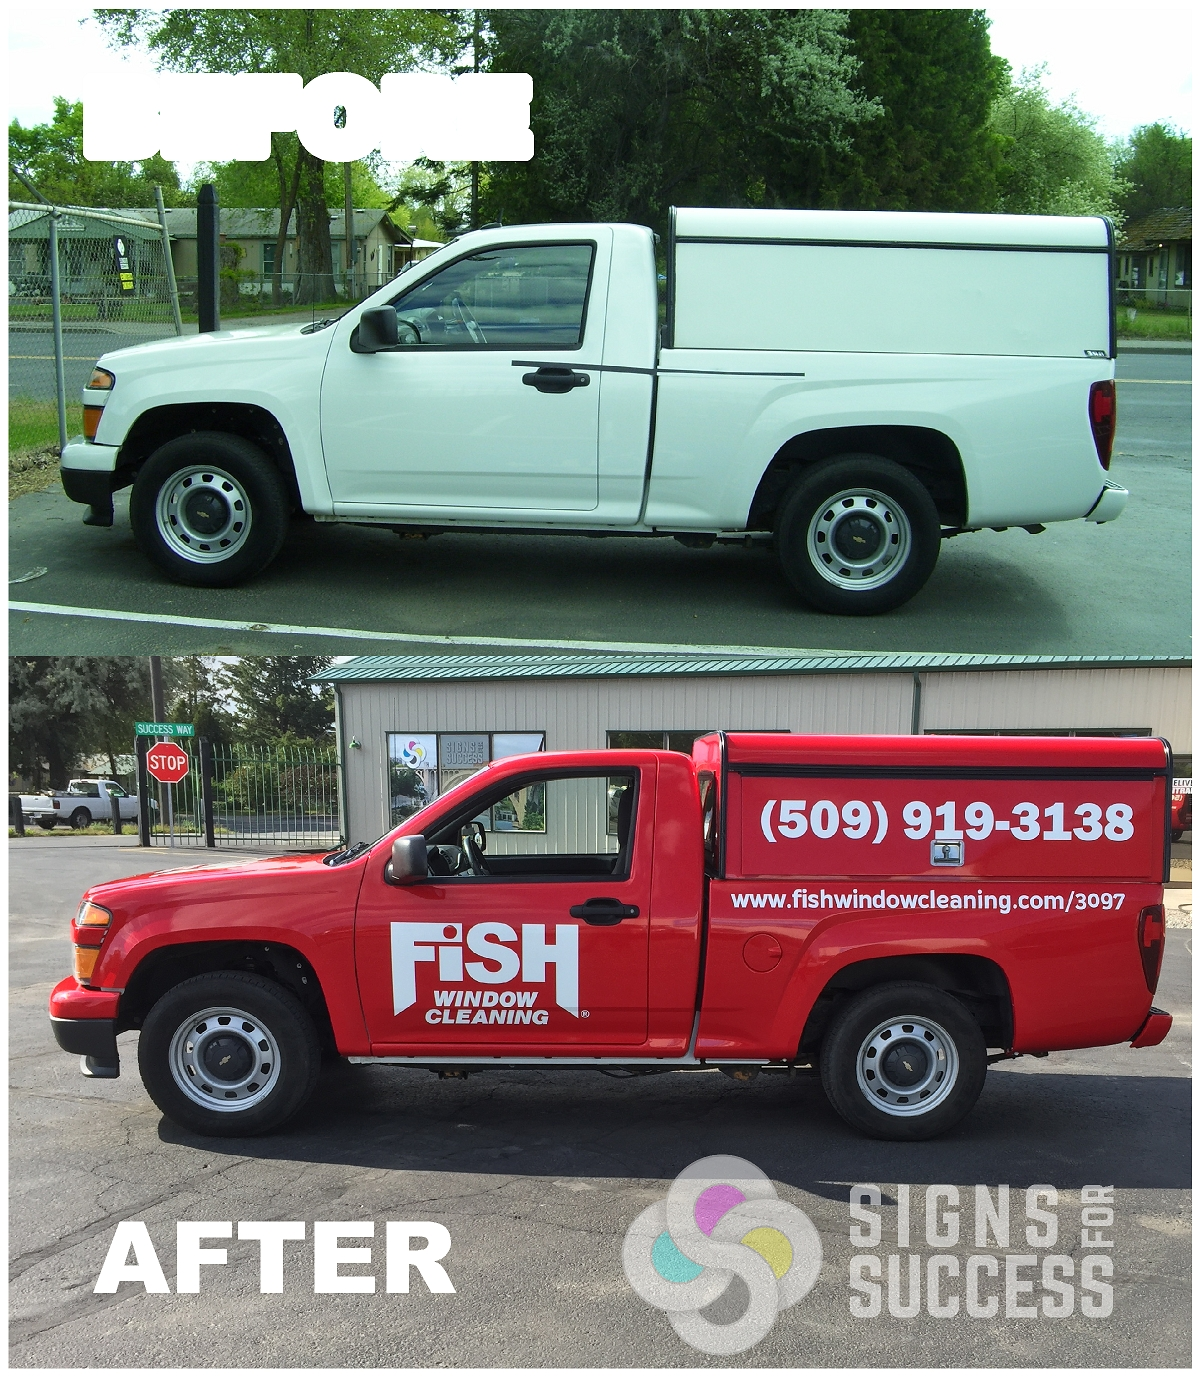 Red Commercial Color Change Wrap for Franchise - Signs for Success